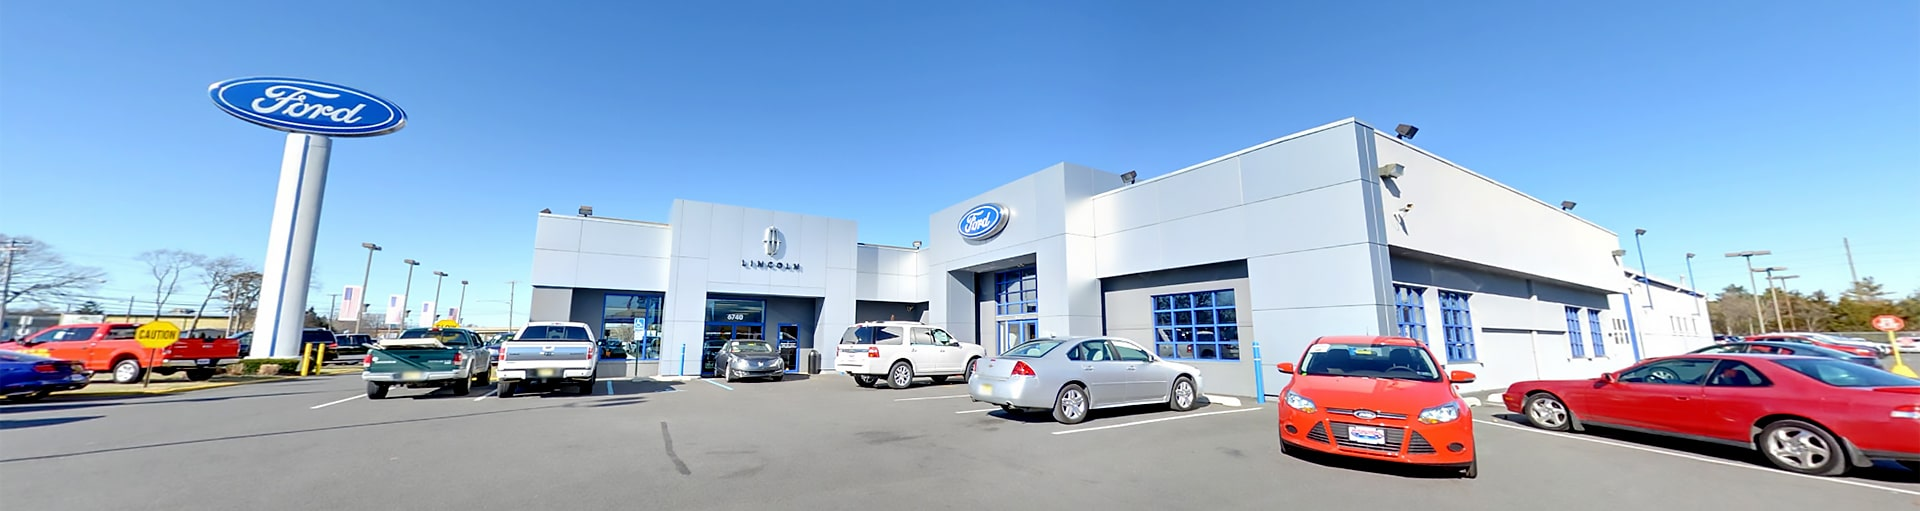 Chapman Ford Oil Change Department